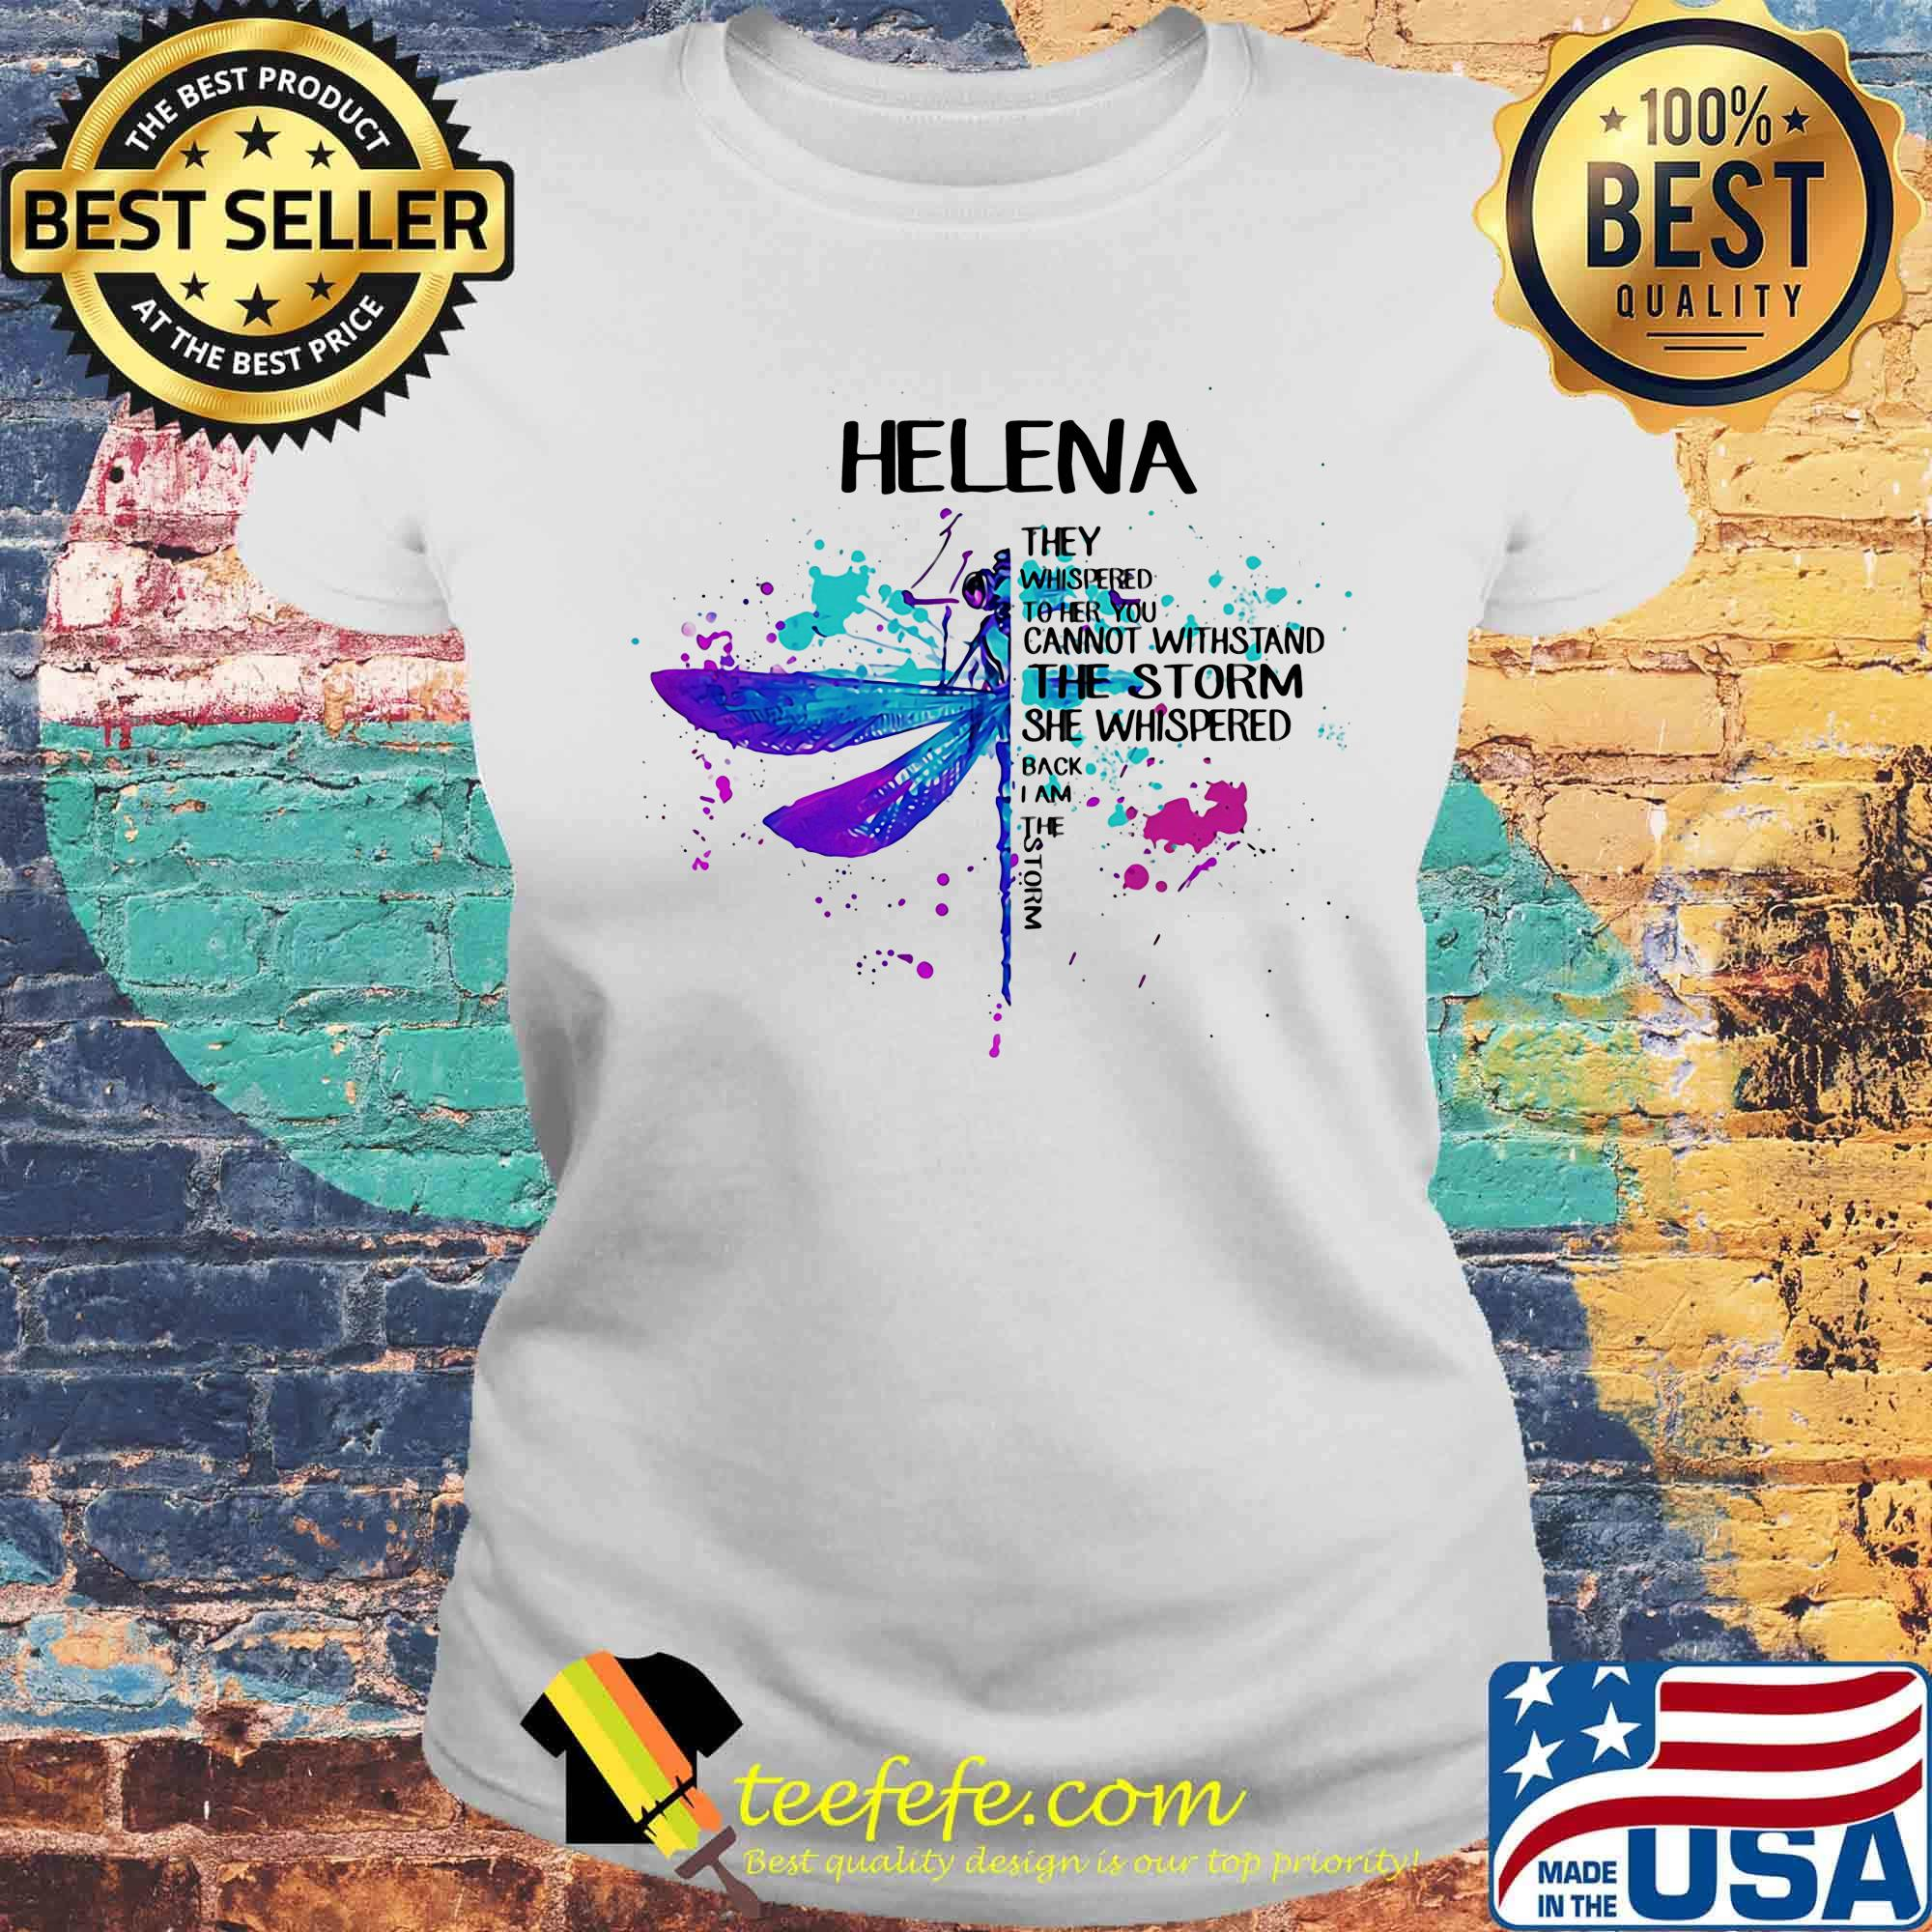 Helena They Whispered To Her You Can Not Withstand The Storm She Whispered Back I Am The Storm Dragonfly Shirt Laides tee